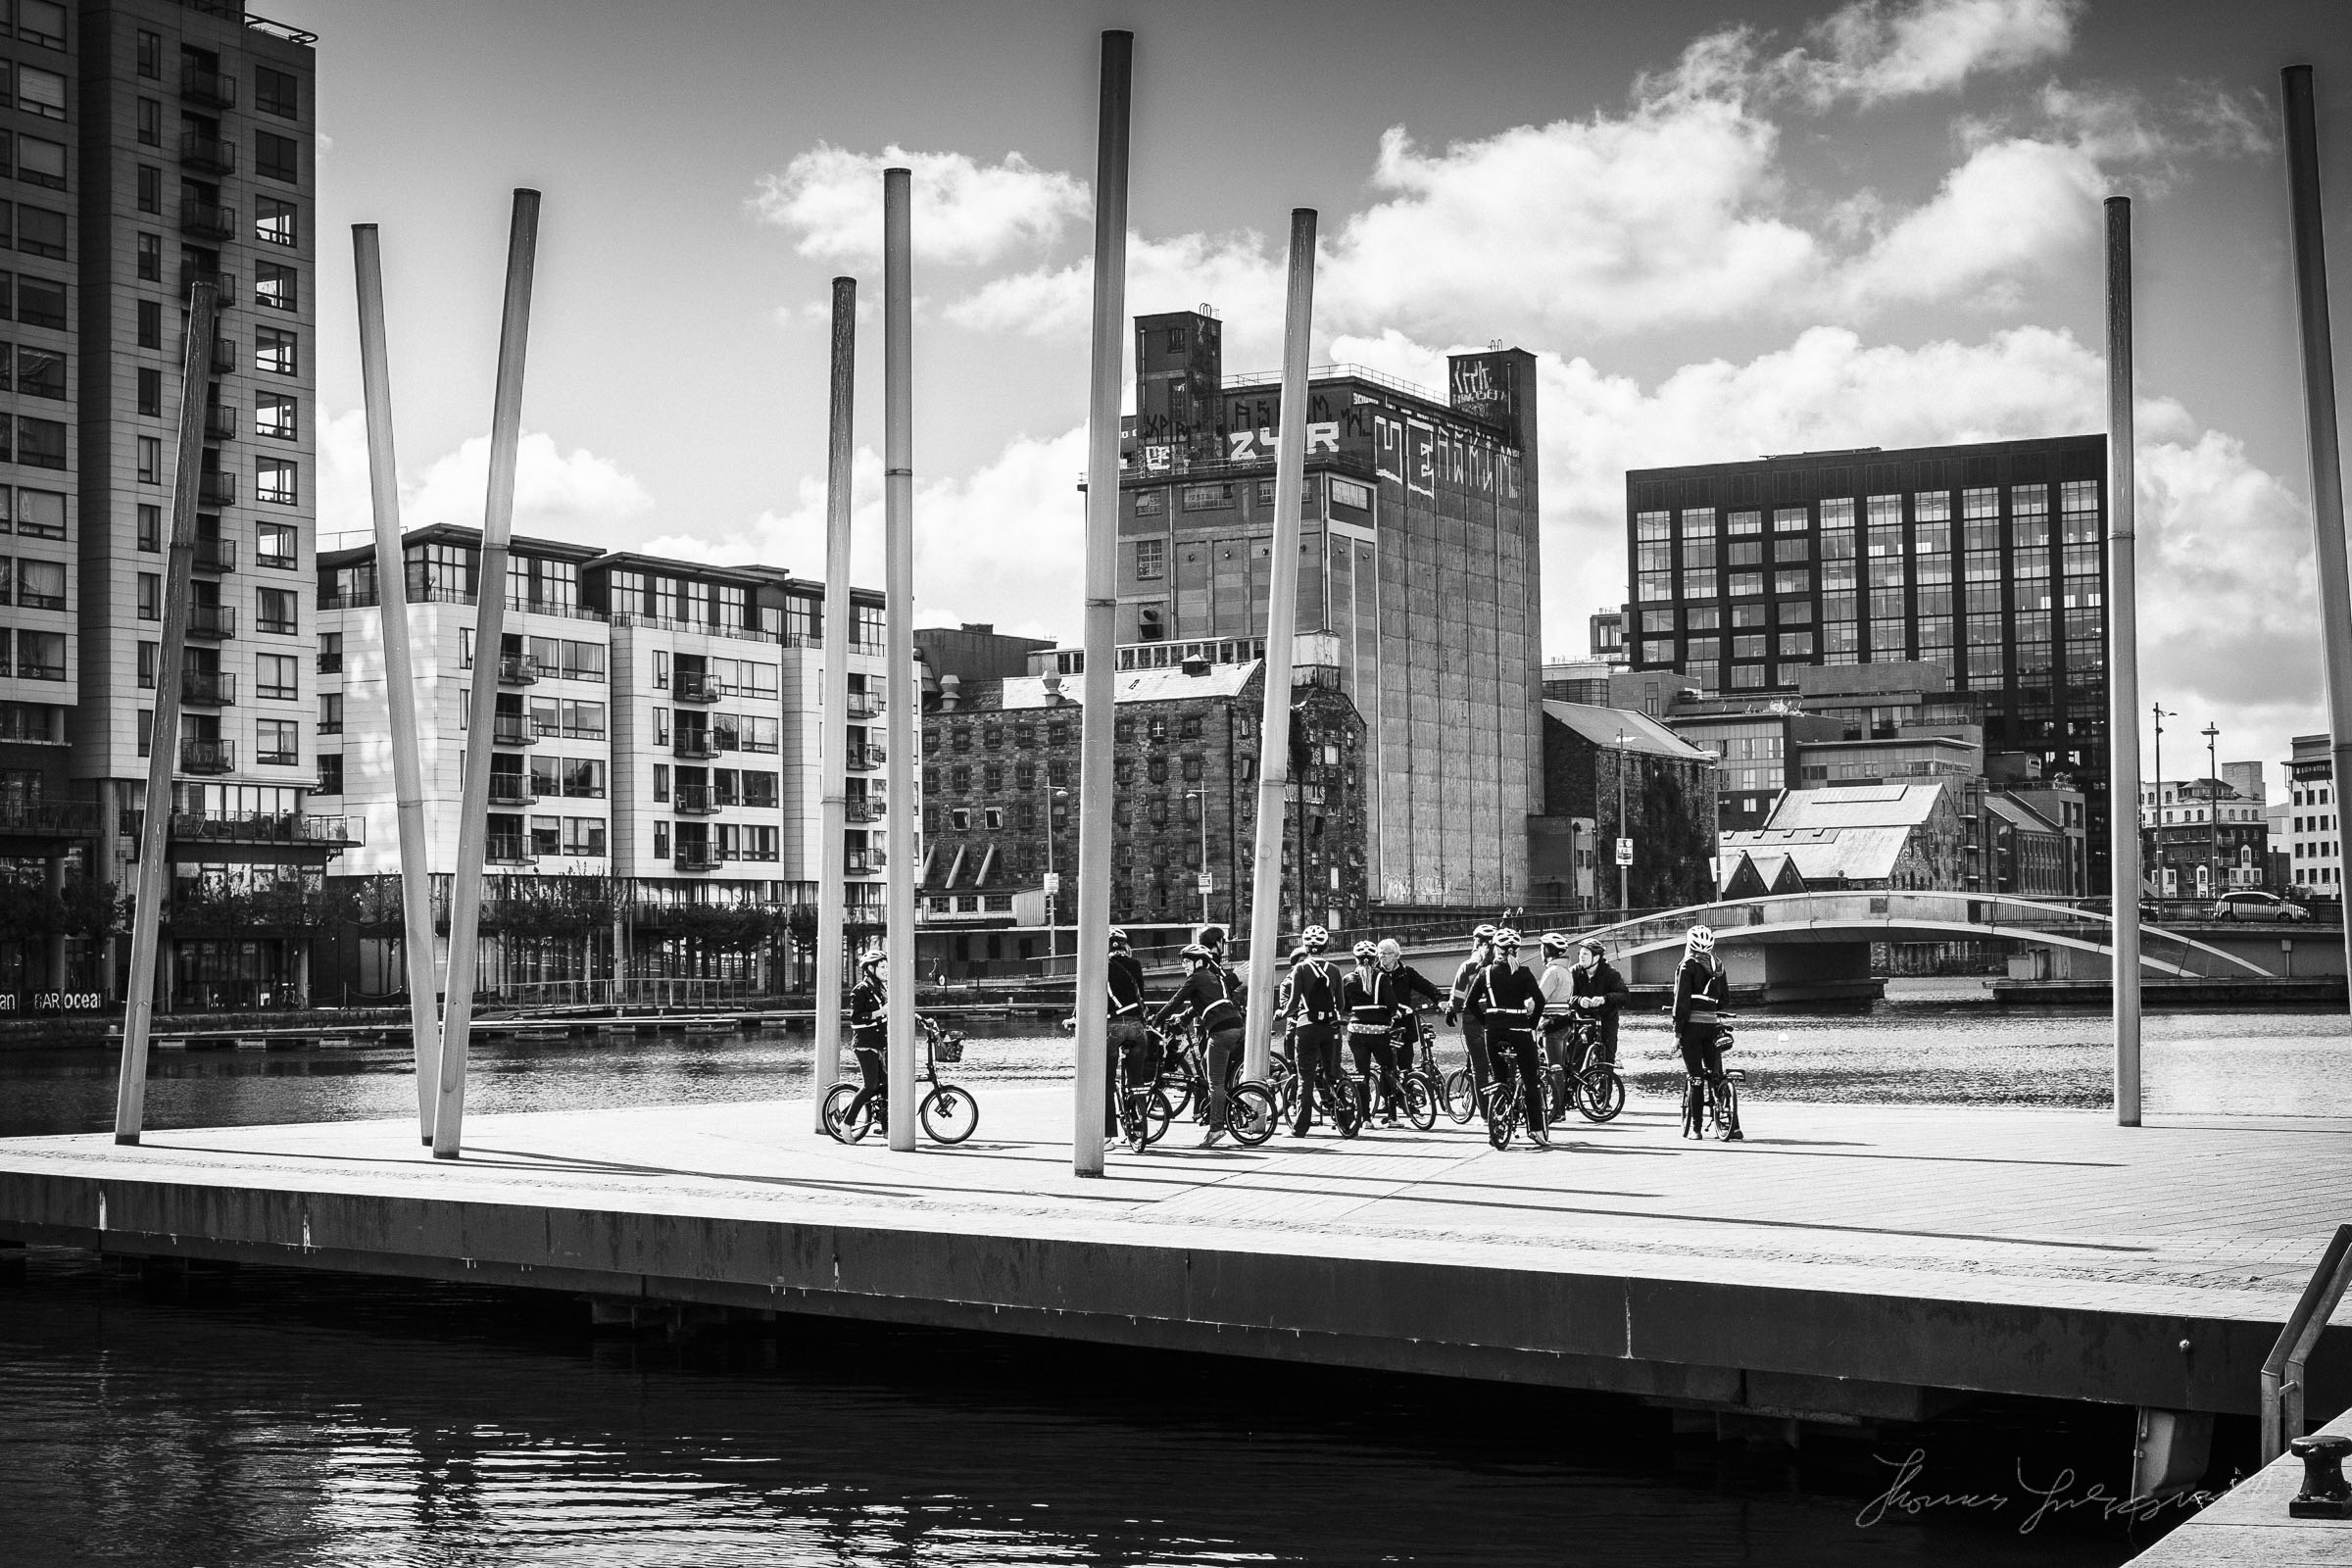 A Cycle tour stops to examine the docklands